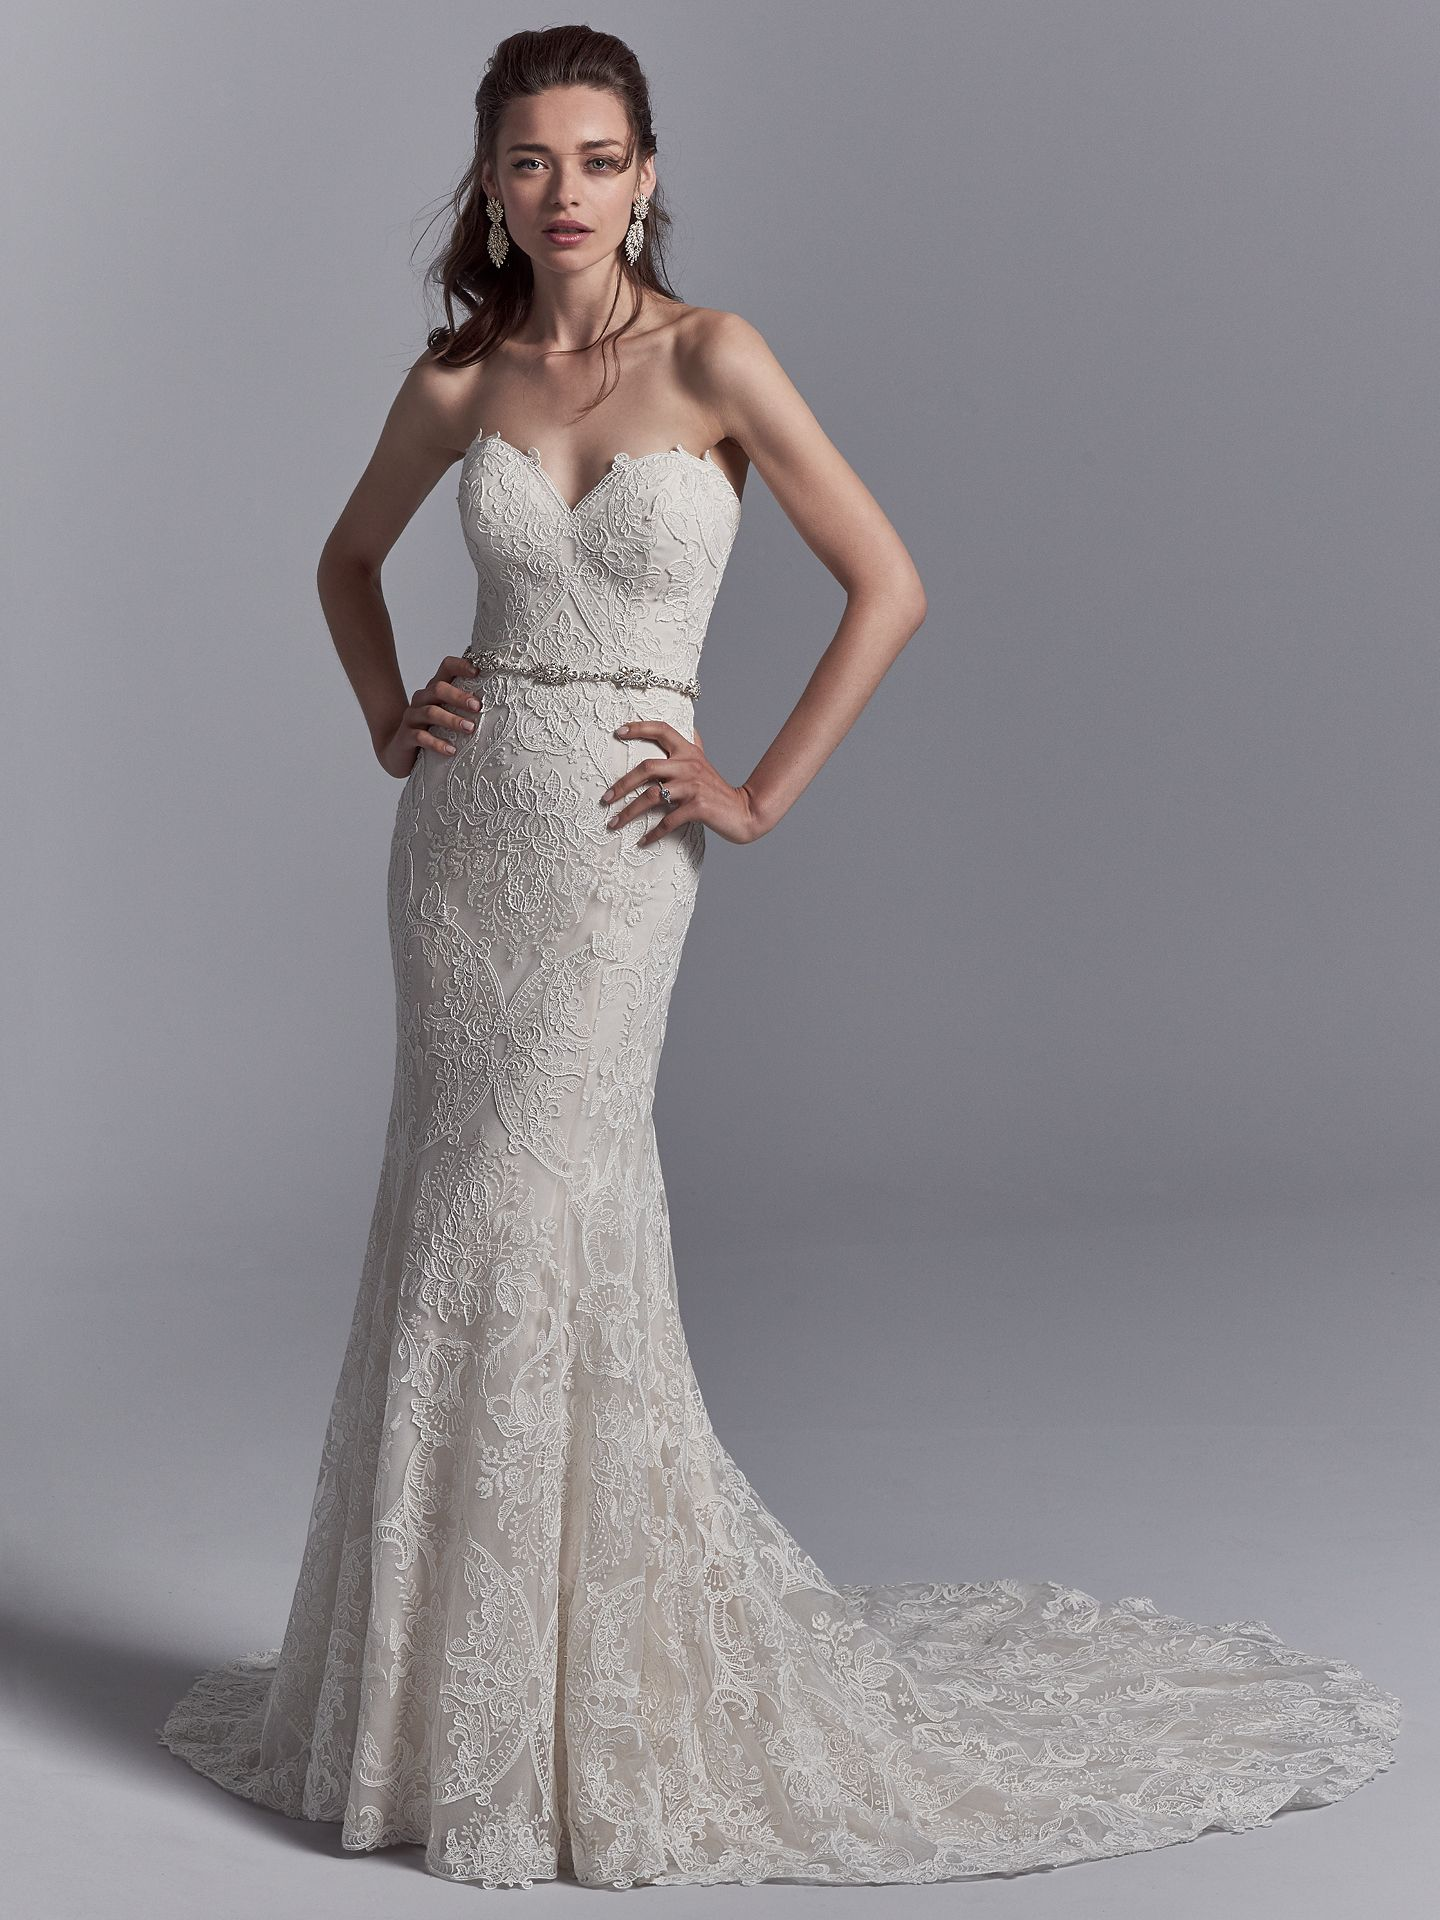 The Latest Wedding Dress Trends for Engagement Season 2018 - Graham wedding dress with Jersey lining for a luxe, breezy and figure-flattering fit.